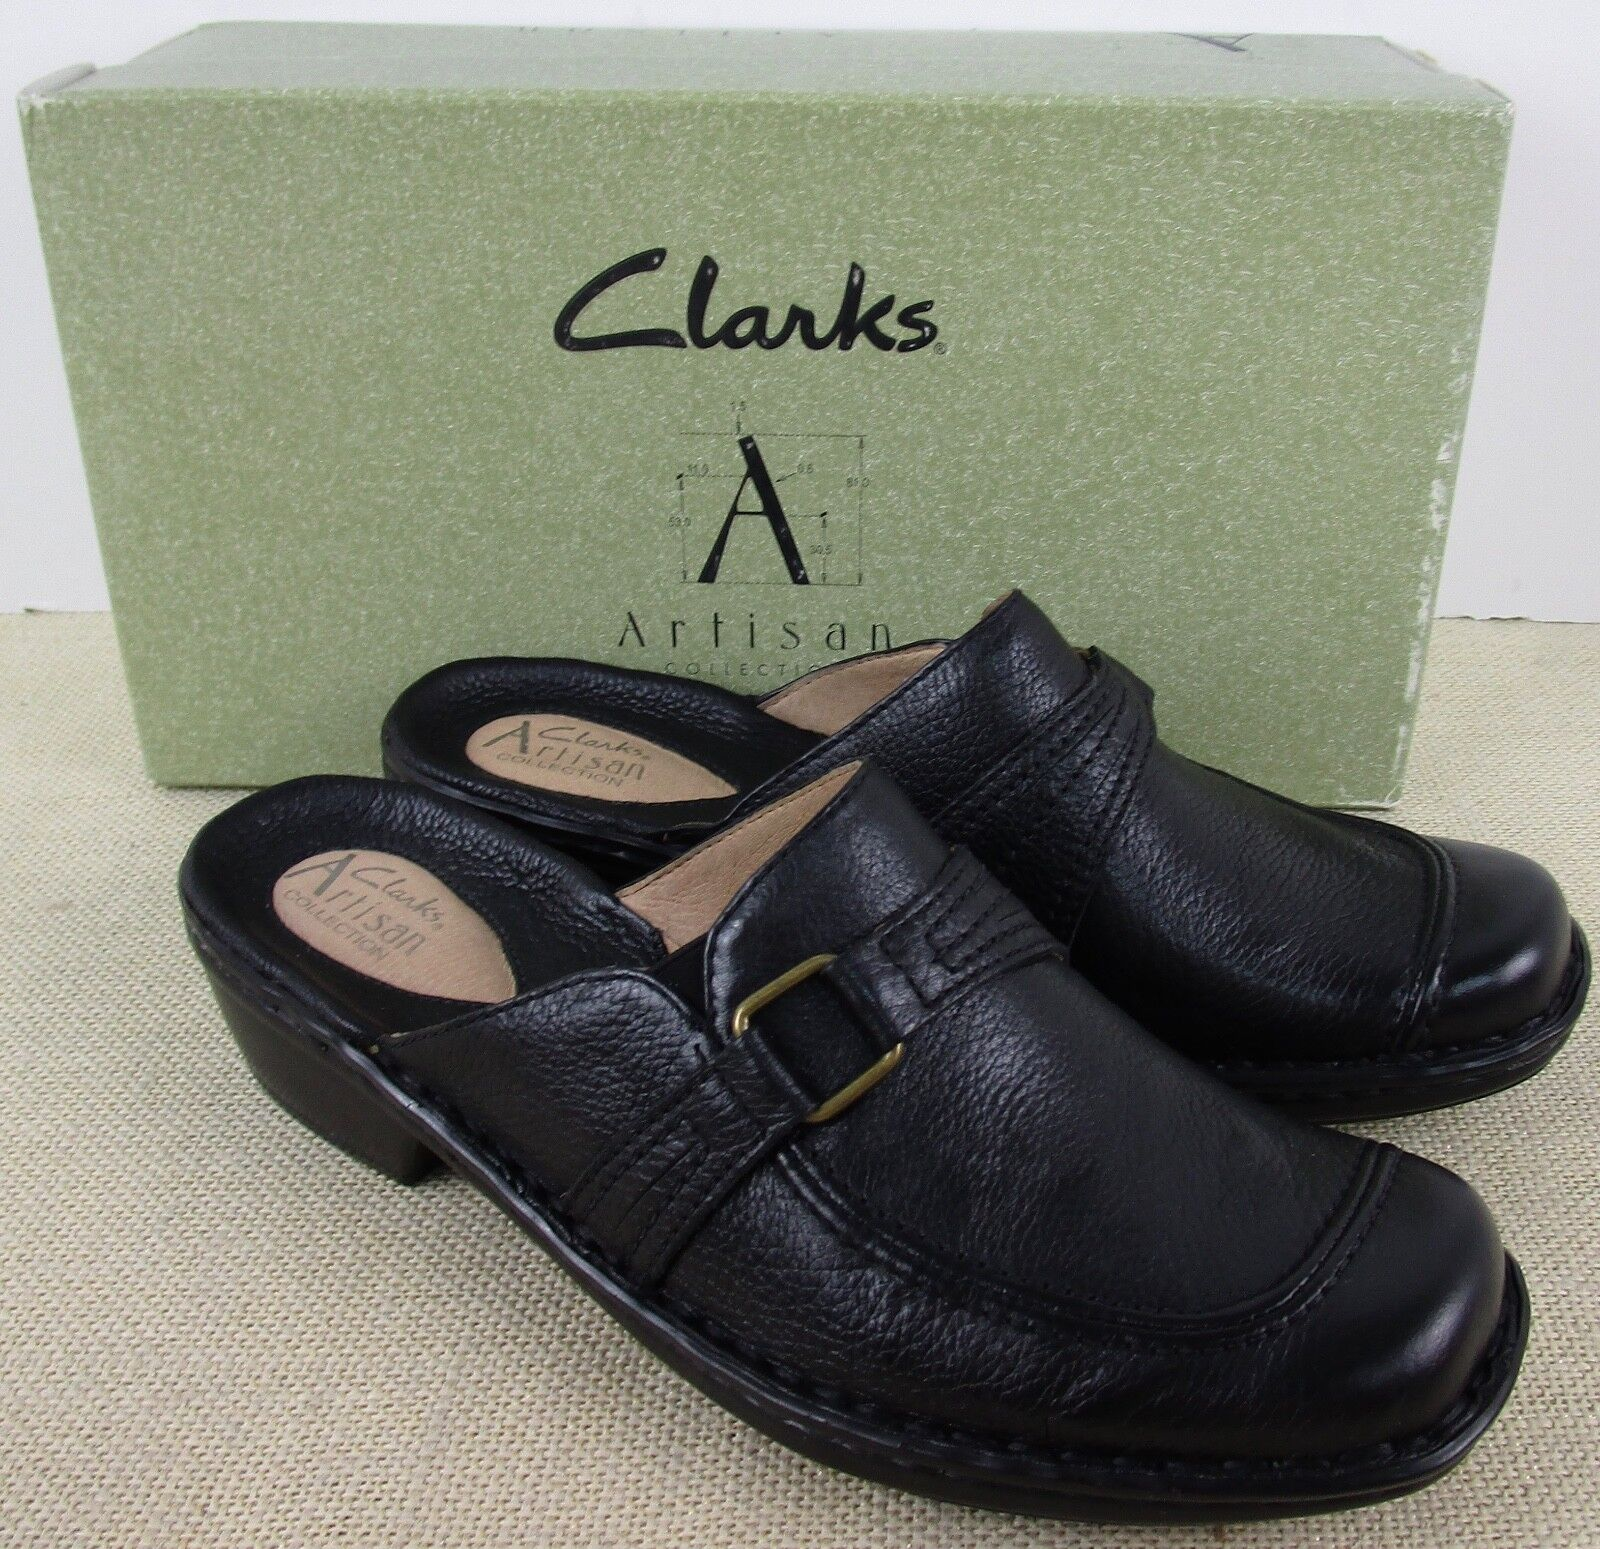 CLARKS ARTISAN 74798 WOMEN'S BLACK LEATHER CLOG SHOES NEW IN BOX